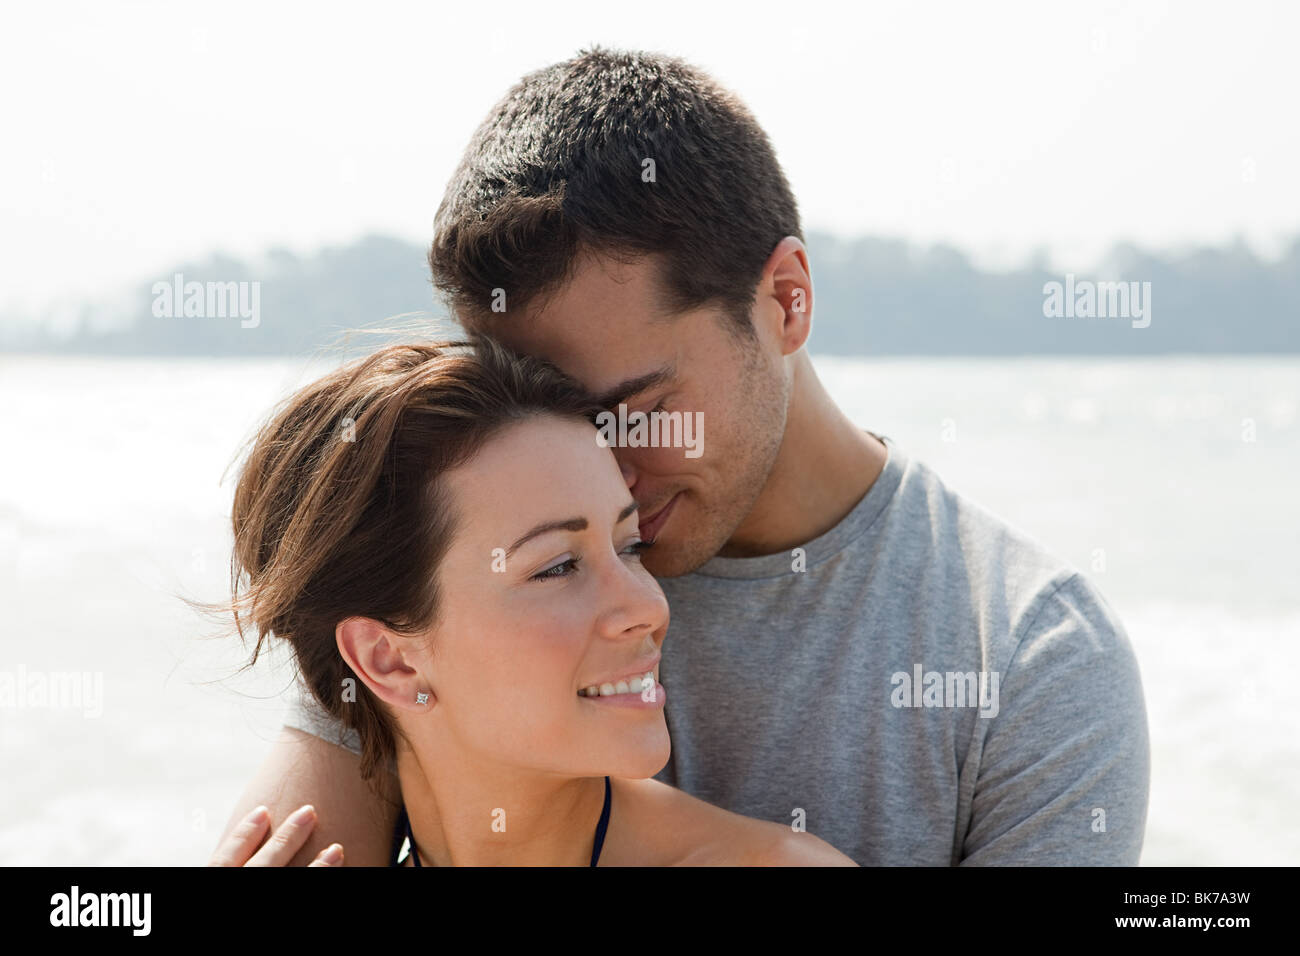 Couple d'amoureux de la mer Photo Stock